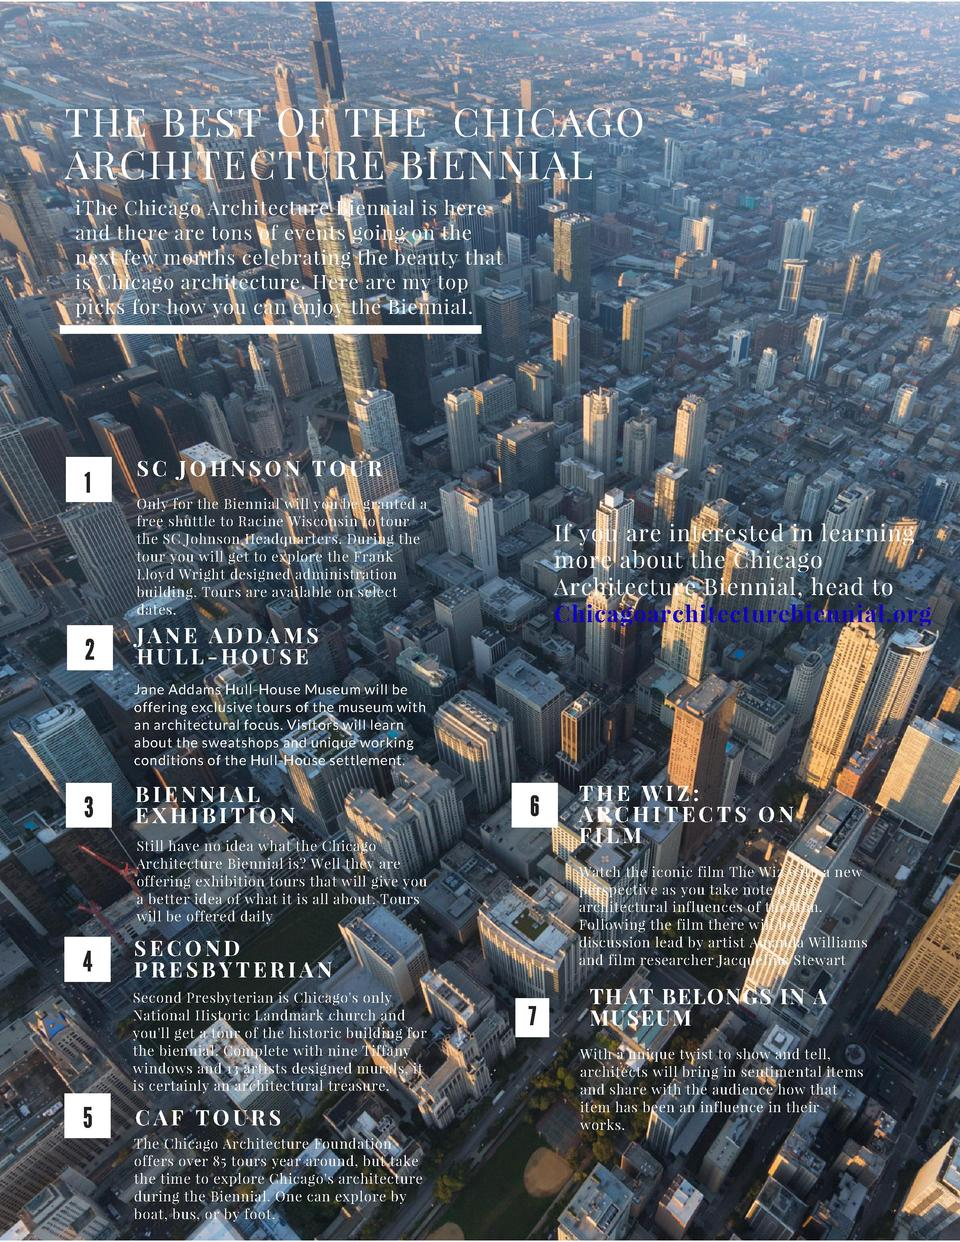 THE BEST OF THE CHICAGO ARCHITECTURE BIENNIAL iThe Chicago Architecture Biennial is here and there are tons of events goin...